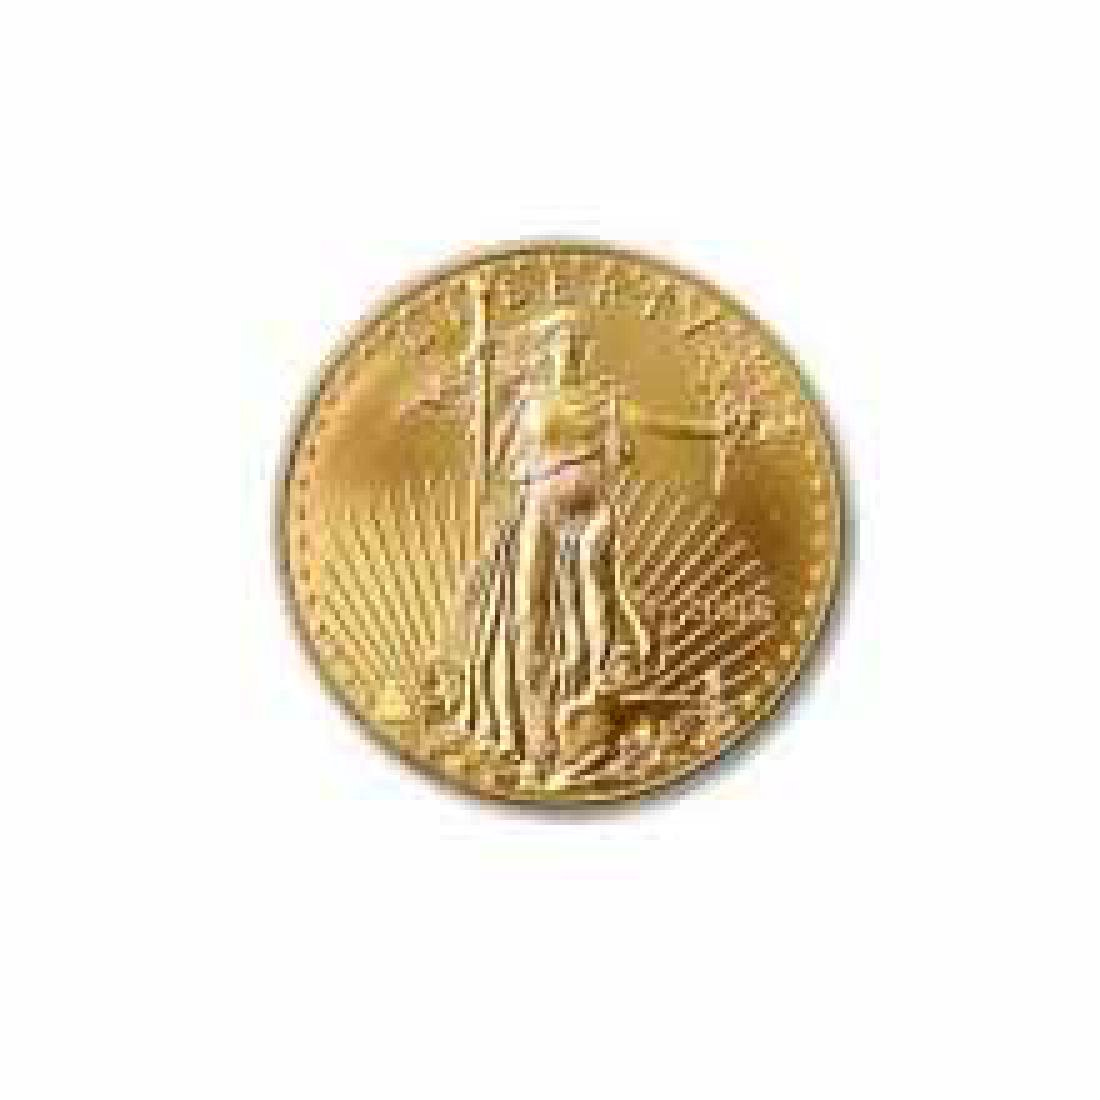 2008 American Gold Eagle 1/10 oz Uncirculated